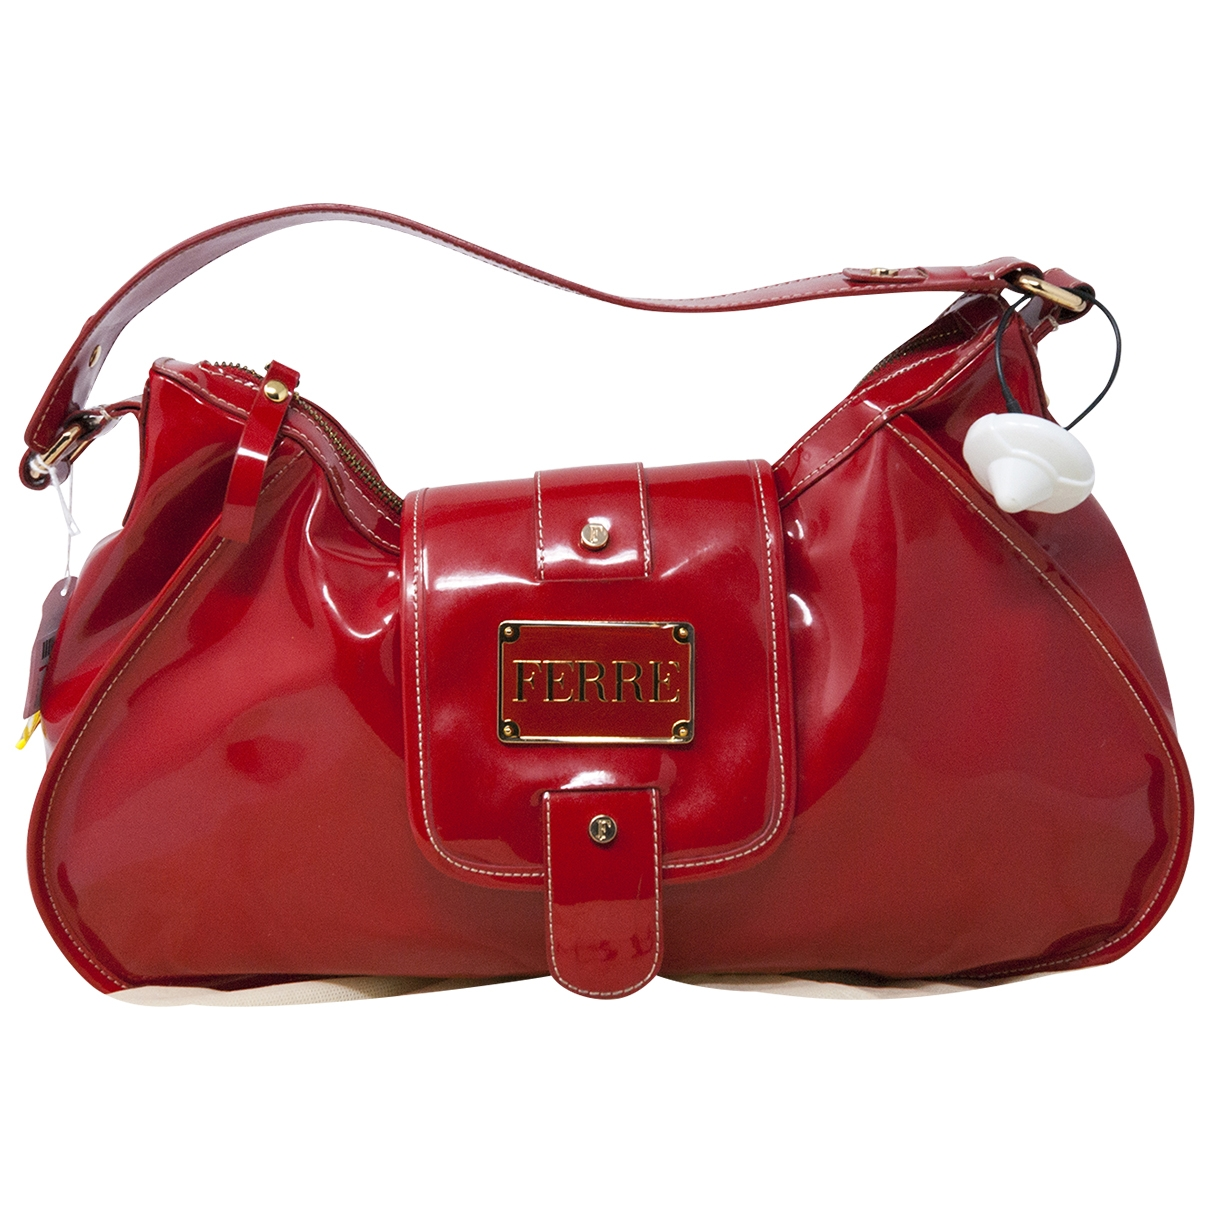 Gianfranco Ferré \N Red Patent leather handbag for Women \N